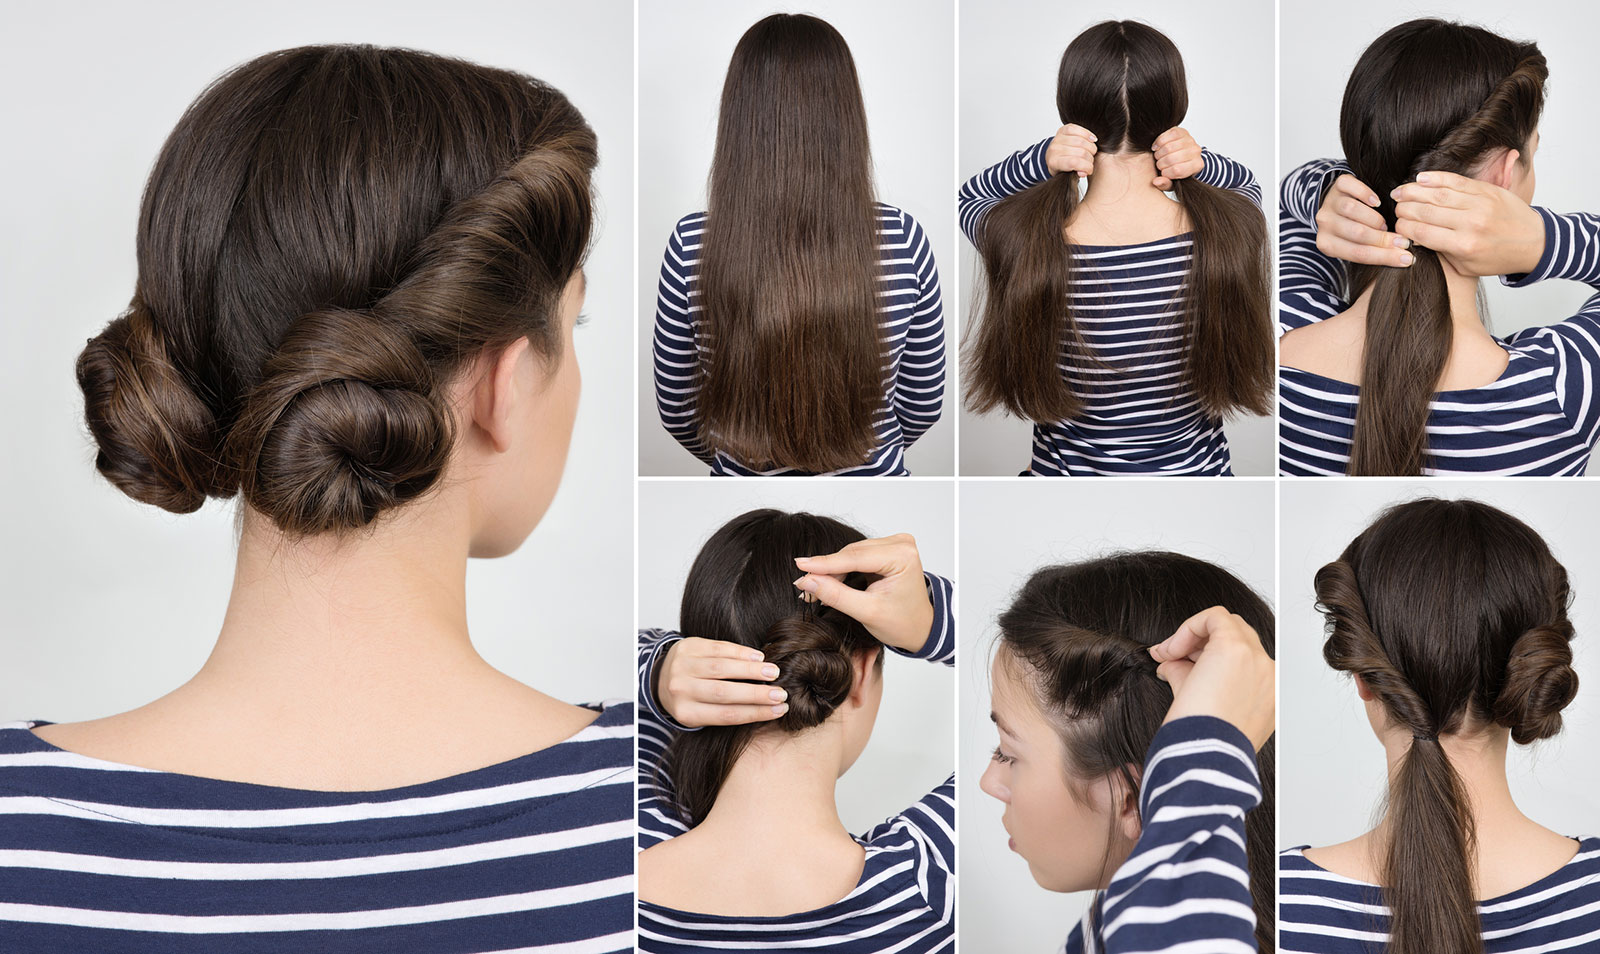 Twisted double buns easy hair updo